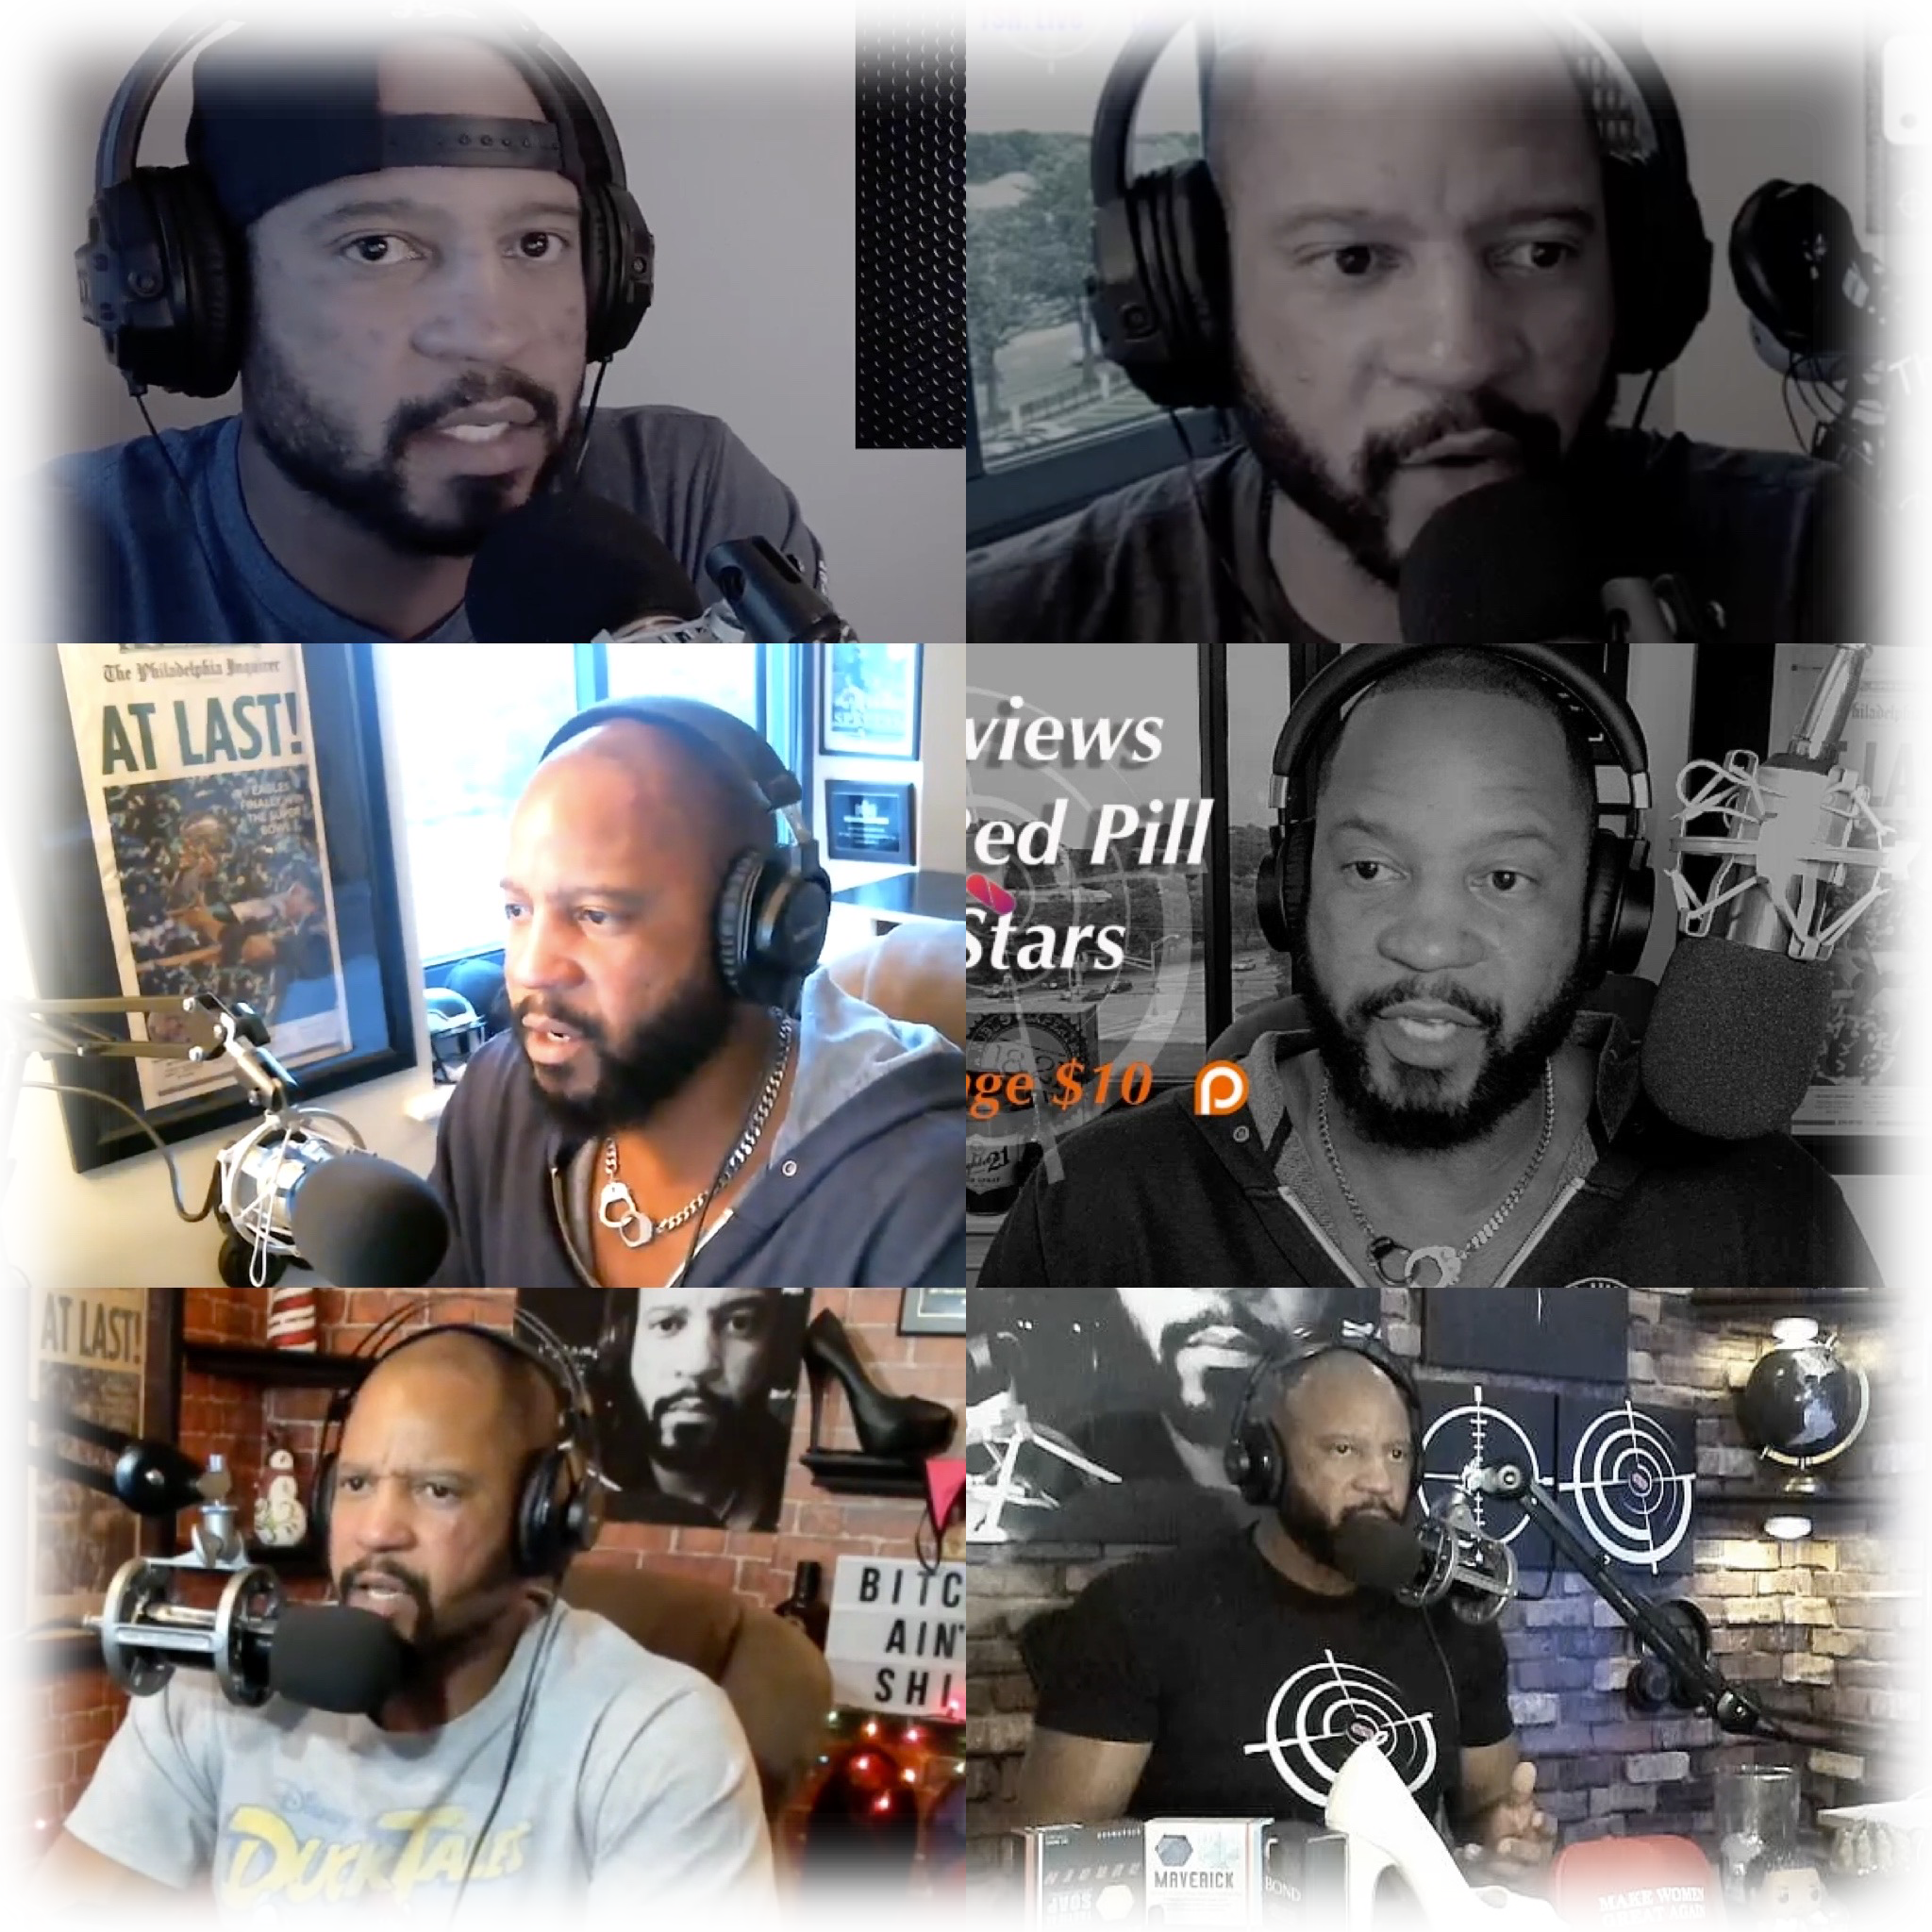 THE RED PILL PODCAST - I started my podcast back in May of '17 and thanks to like-minded Men, TSR: Live has made great strides in both content and production. The show has gotten          over 4 million views and that's on just one of the many platforms I stream to.The truth isn't pretty, gentlemen. This is why I've been banned on every social media platform out there. Even now my content is de-ranked and de-monetized. But that hasn't stopped me and it NEVER will. Tune in every Monday at NoonEST.